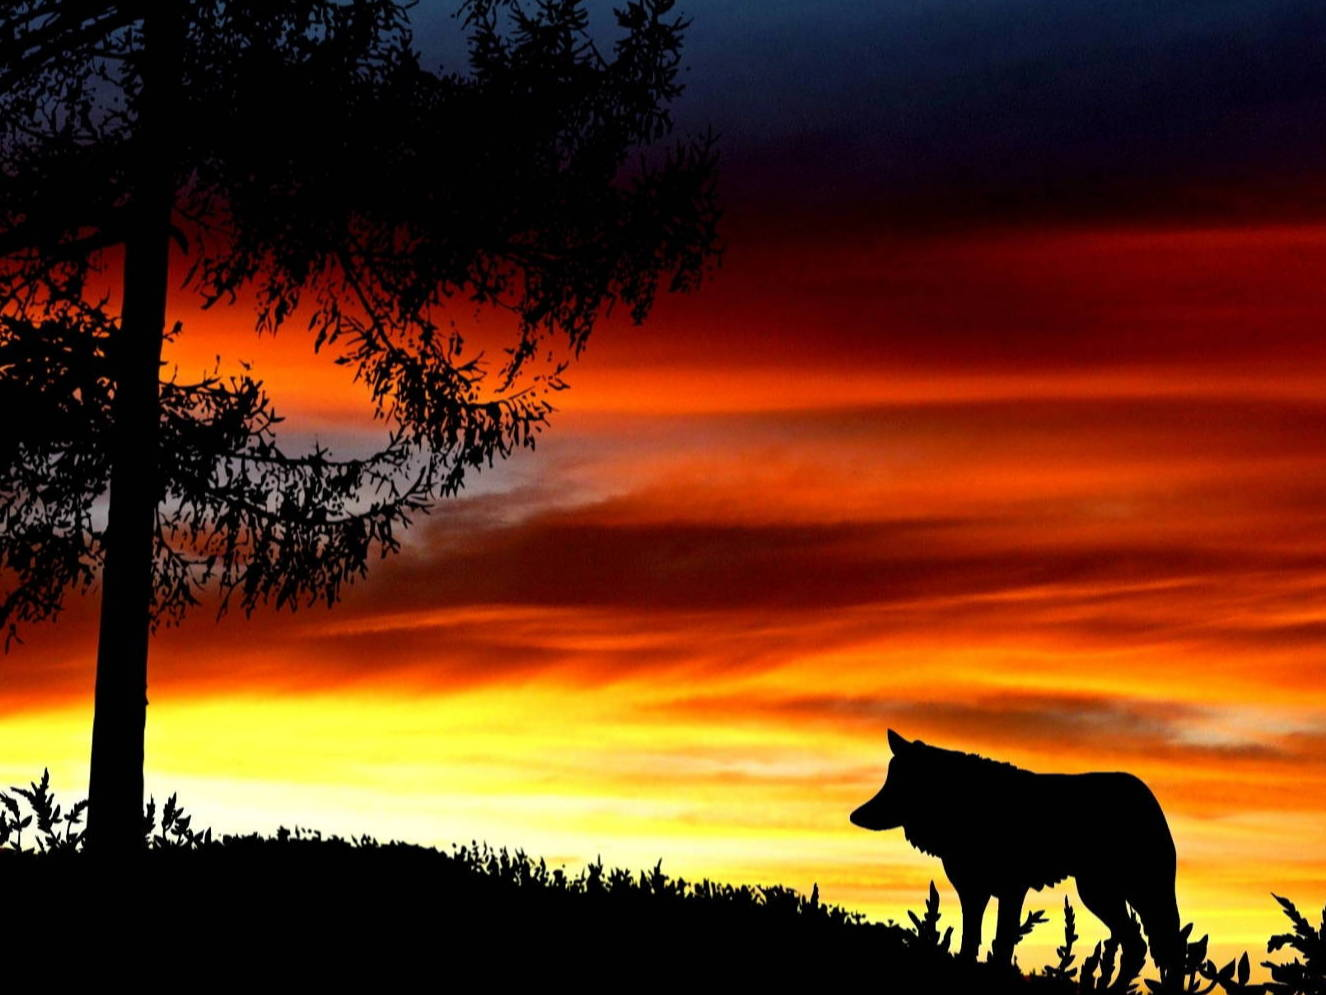 A silhouette of a wolf against an orange and yellow sunset